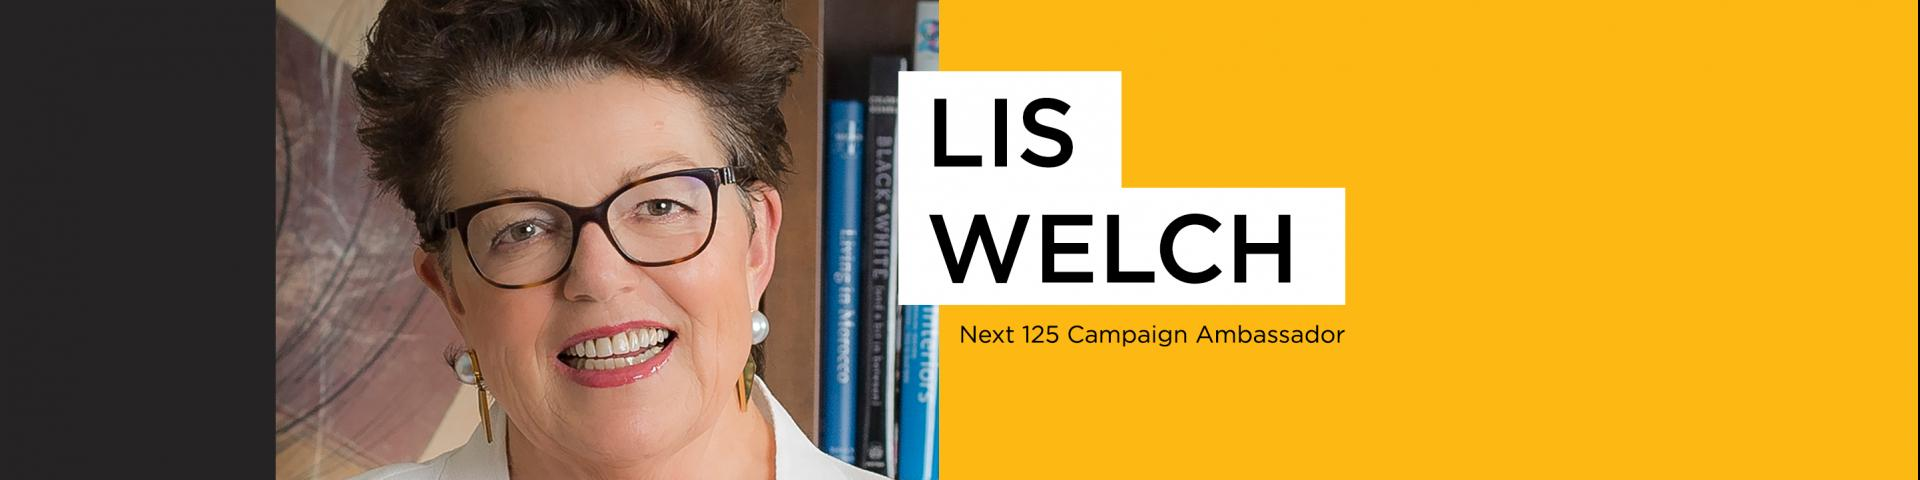 The Next 125 Ambassador, Lis Welch